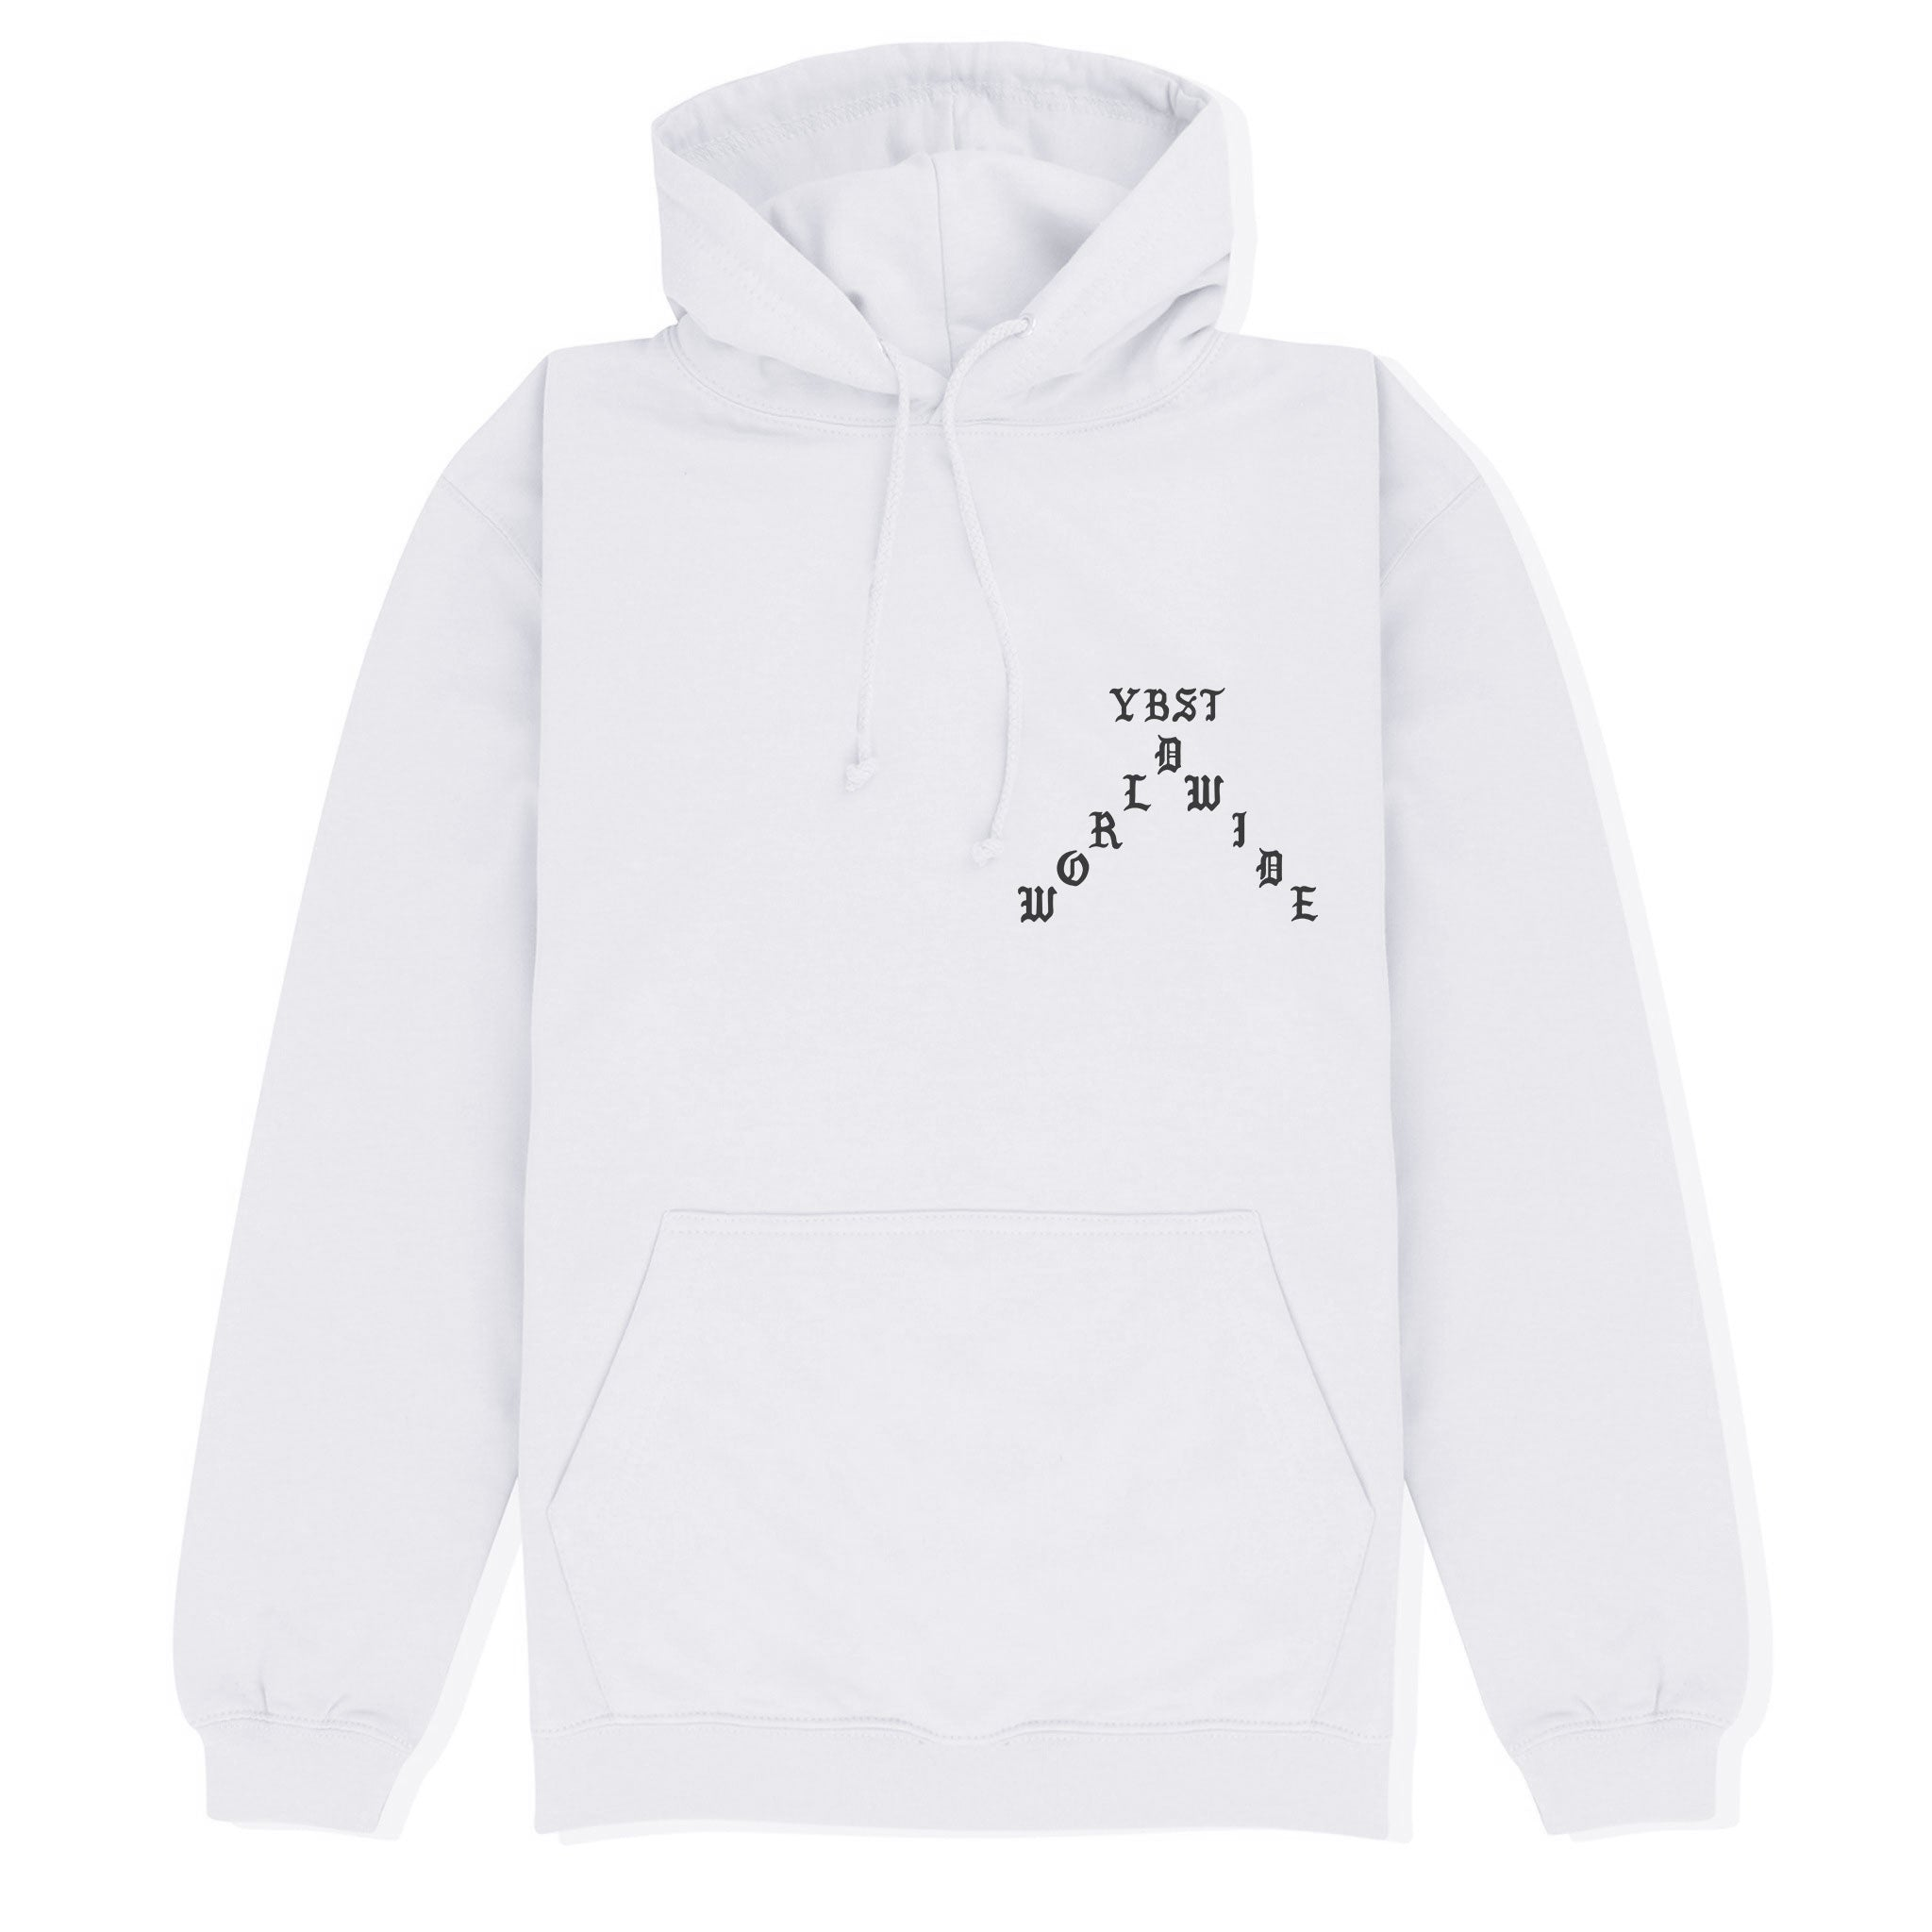 YBST Gothic Hoodie White and Black Front